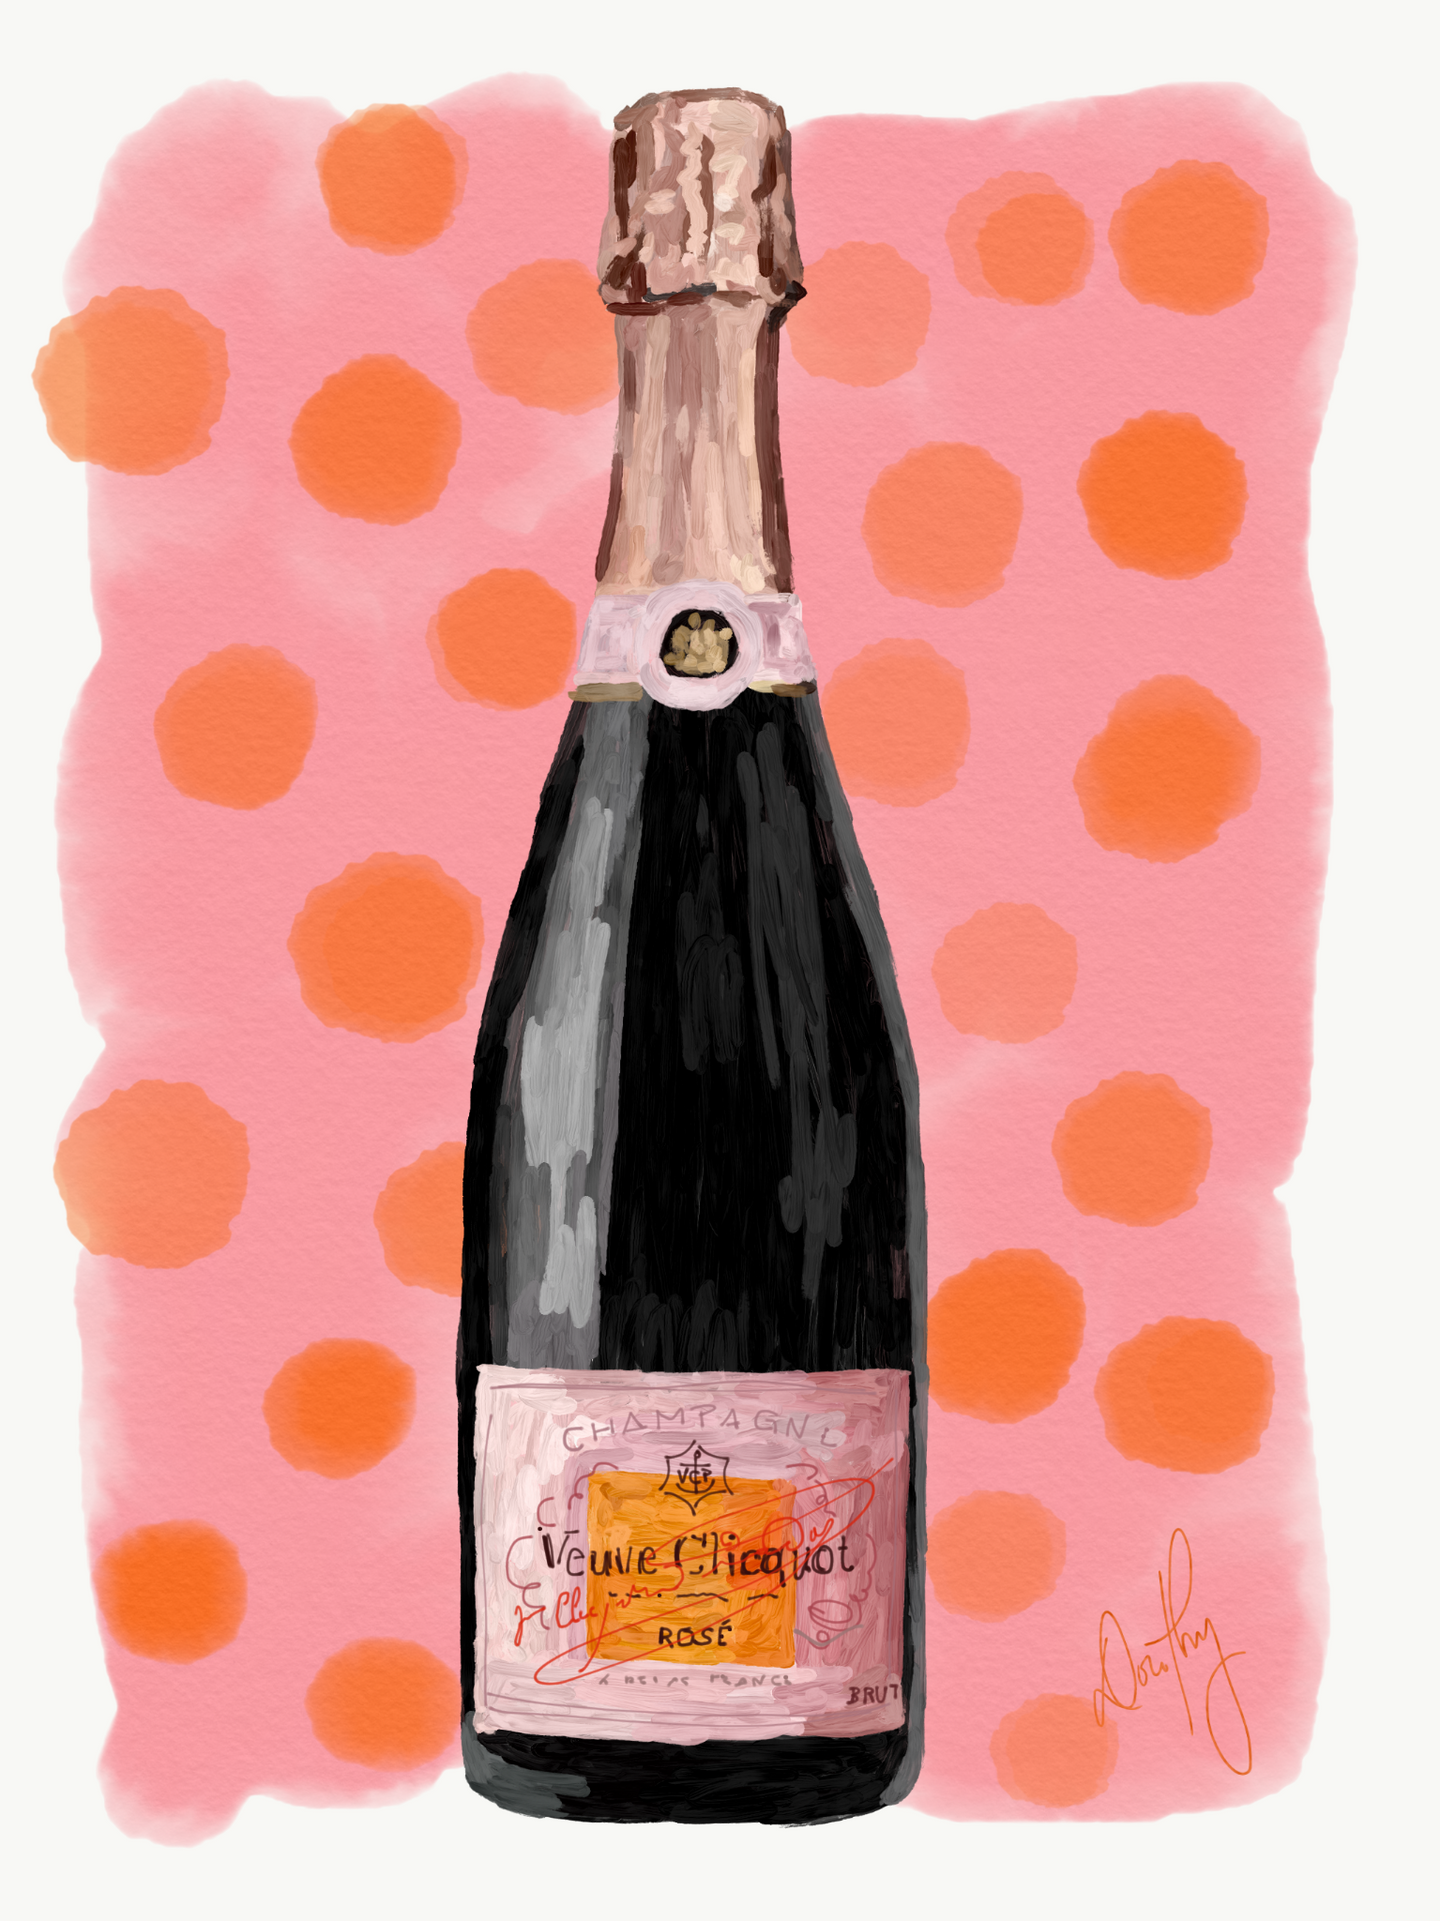 Veuve Clicquot - Rose Polka Dot